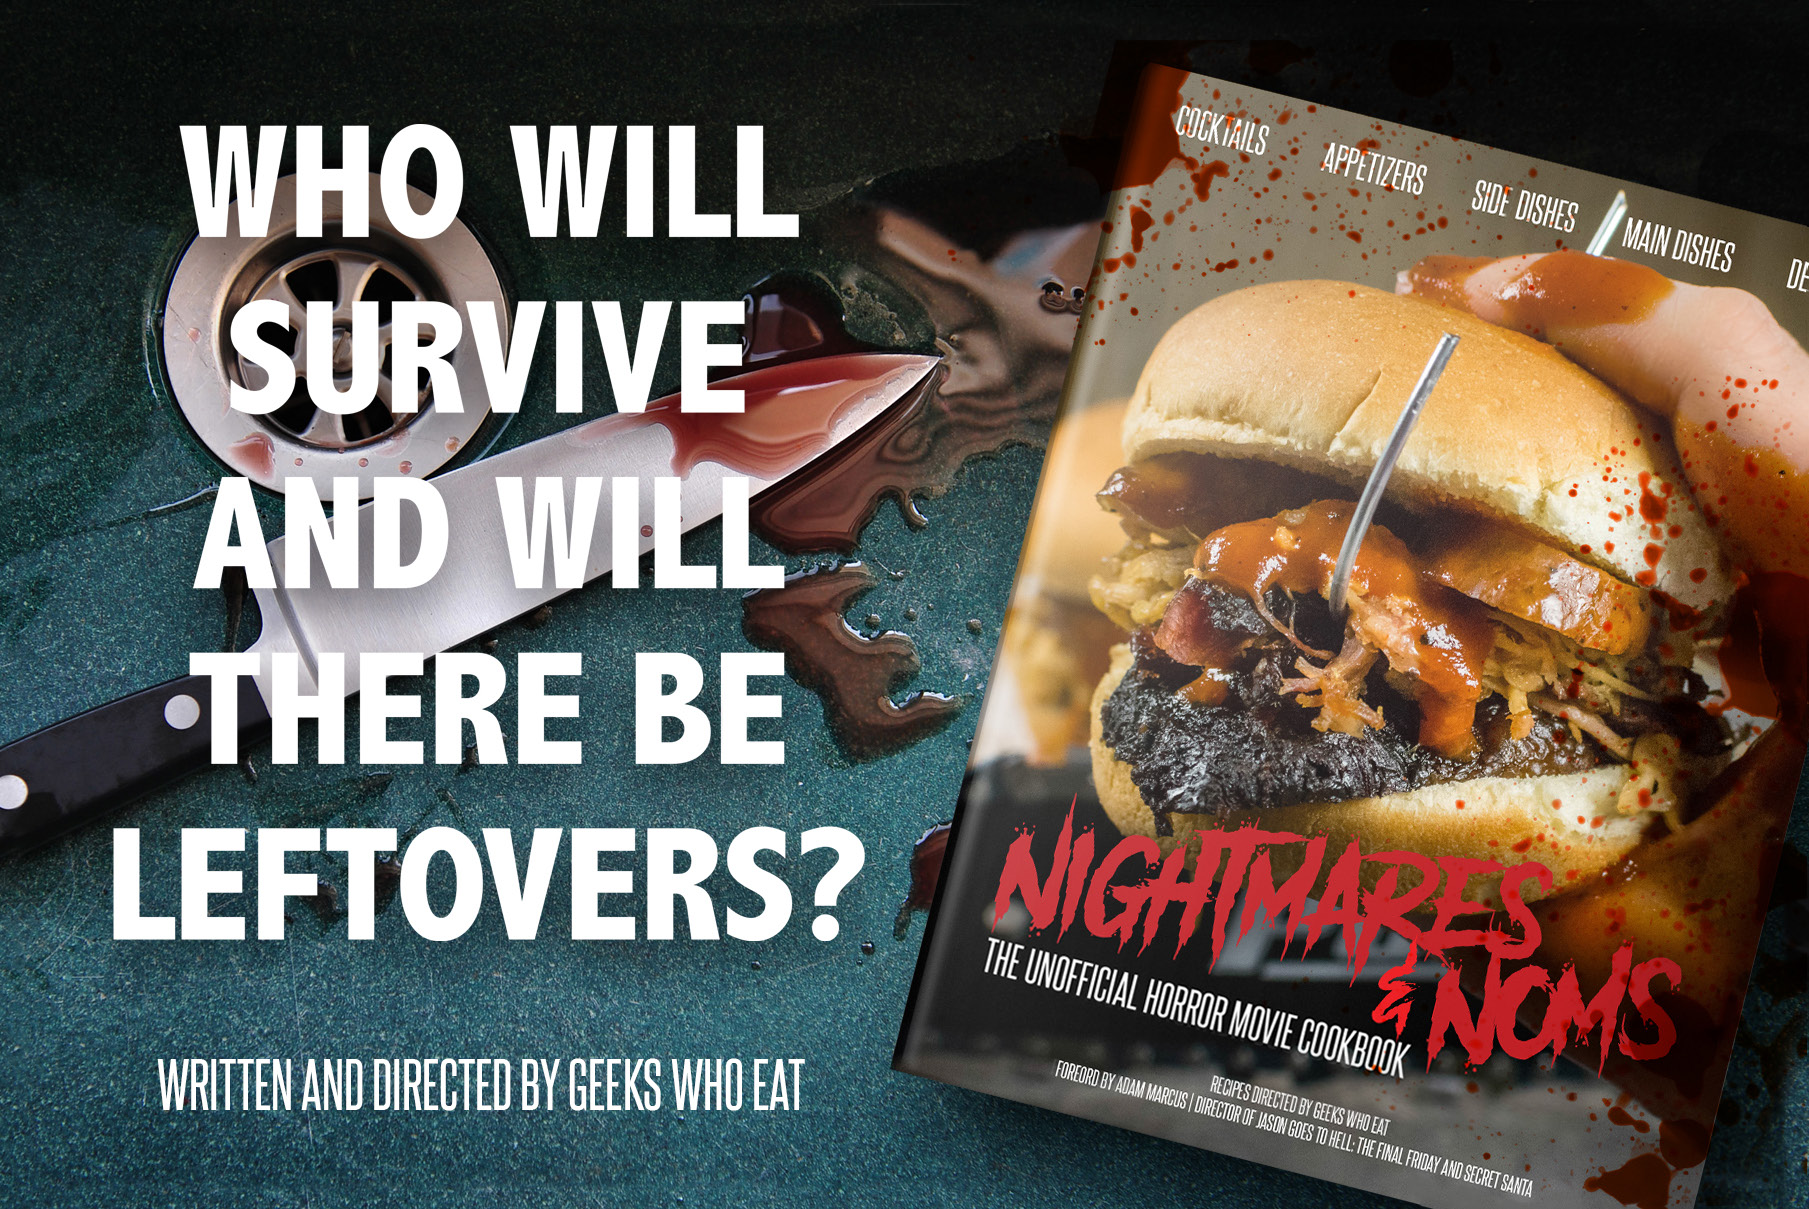 Nightmares and Noms: The Unofficial Horror Movie Cookbook, the first cookbook by The Geeks Who Eat, is coming soon to an e-reader near you! 2geekswhoeat.com